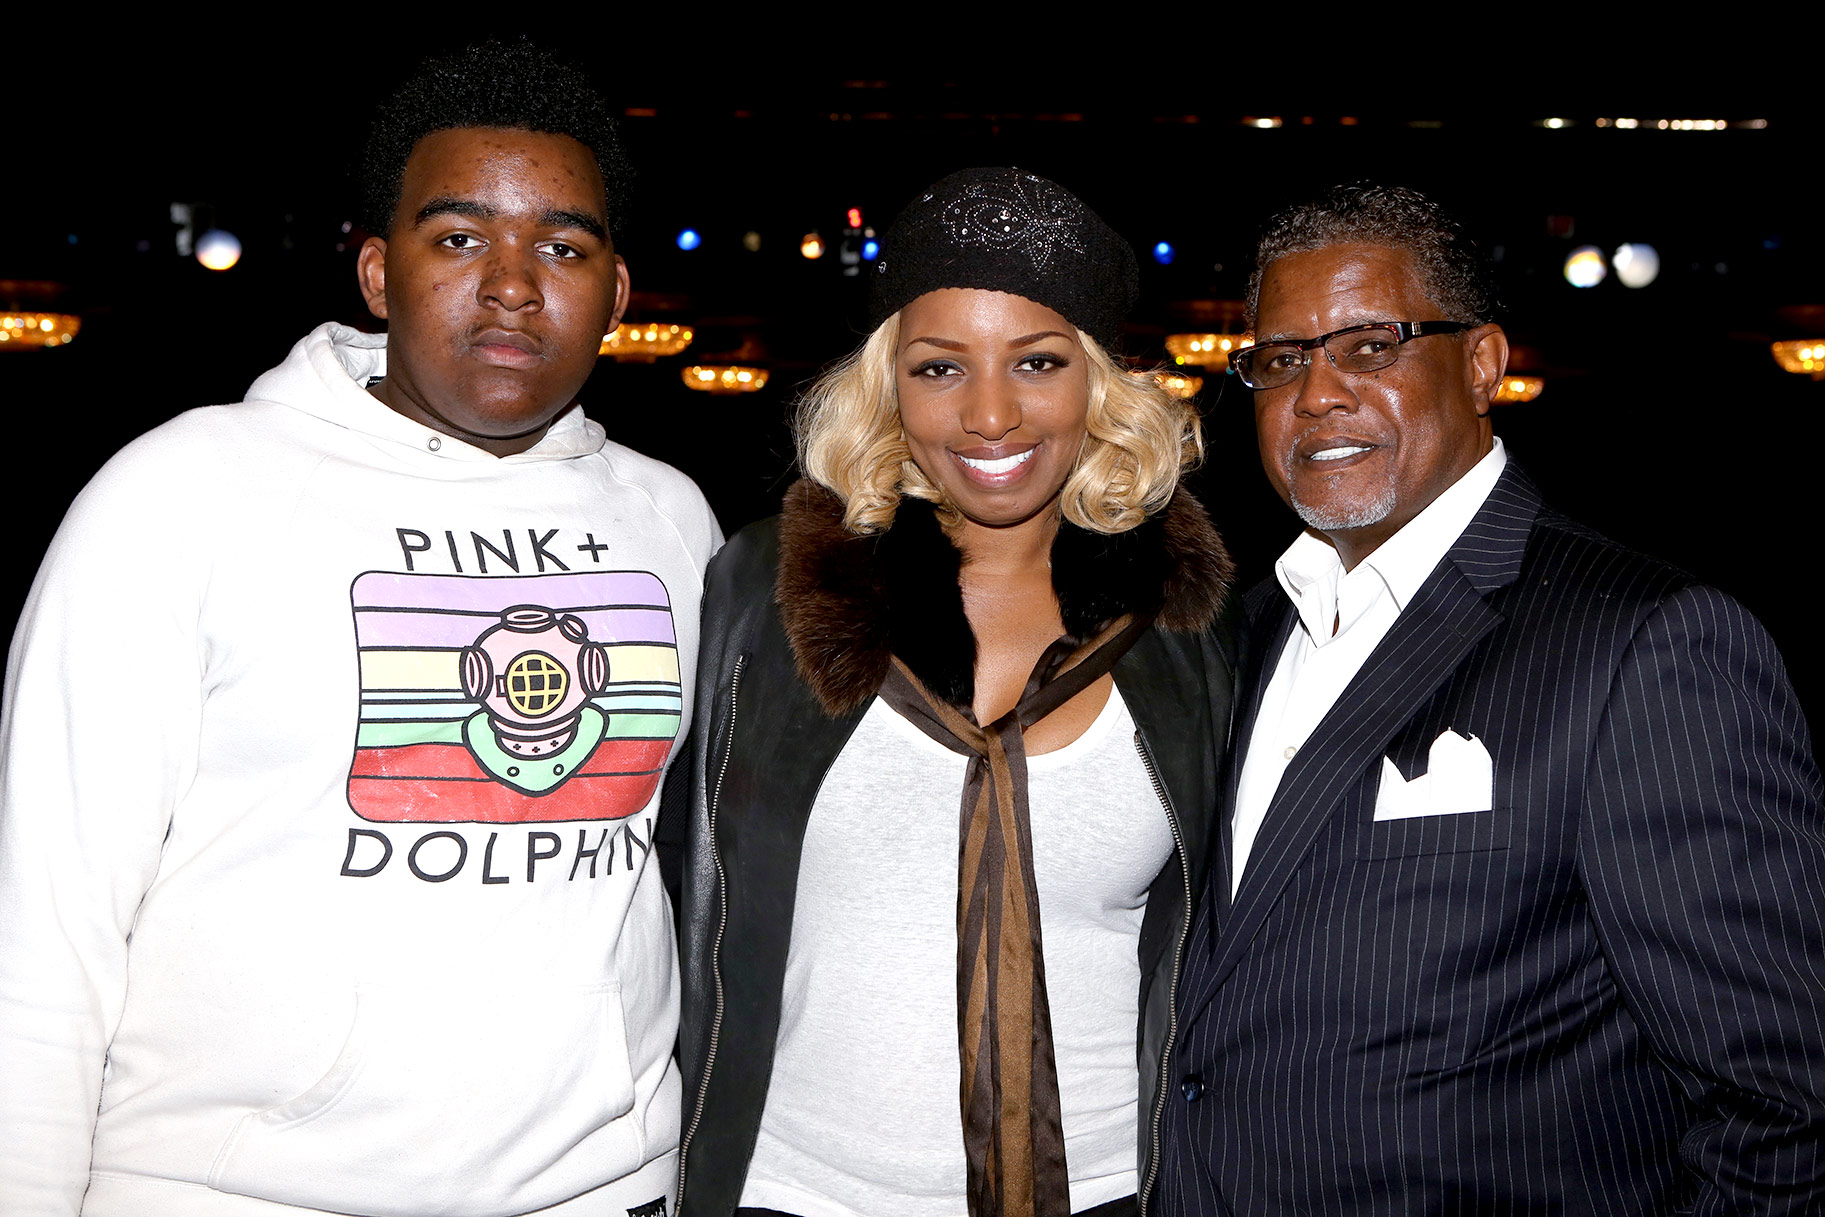 NeNe Leakes Shares Pics From Her And Gregg Leakes' Son, Brentt's Birthday - Check Them Out Here